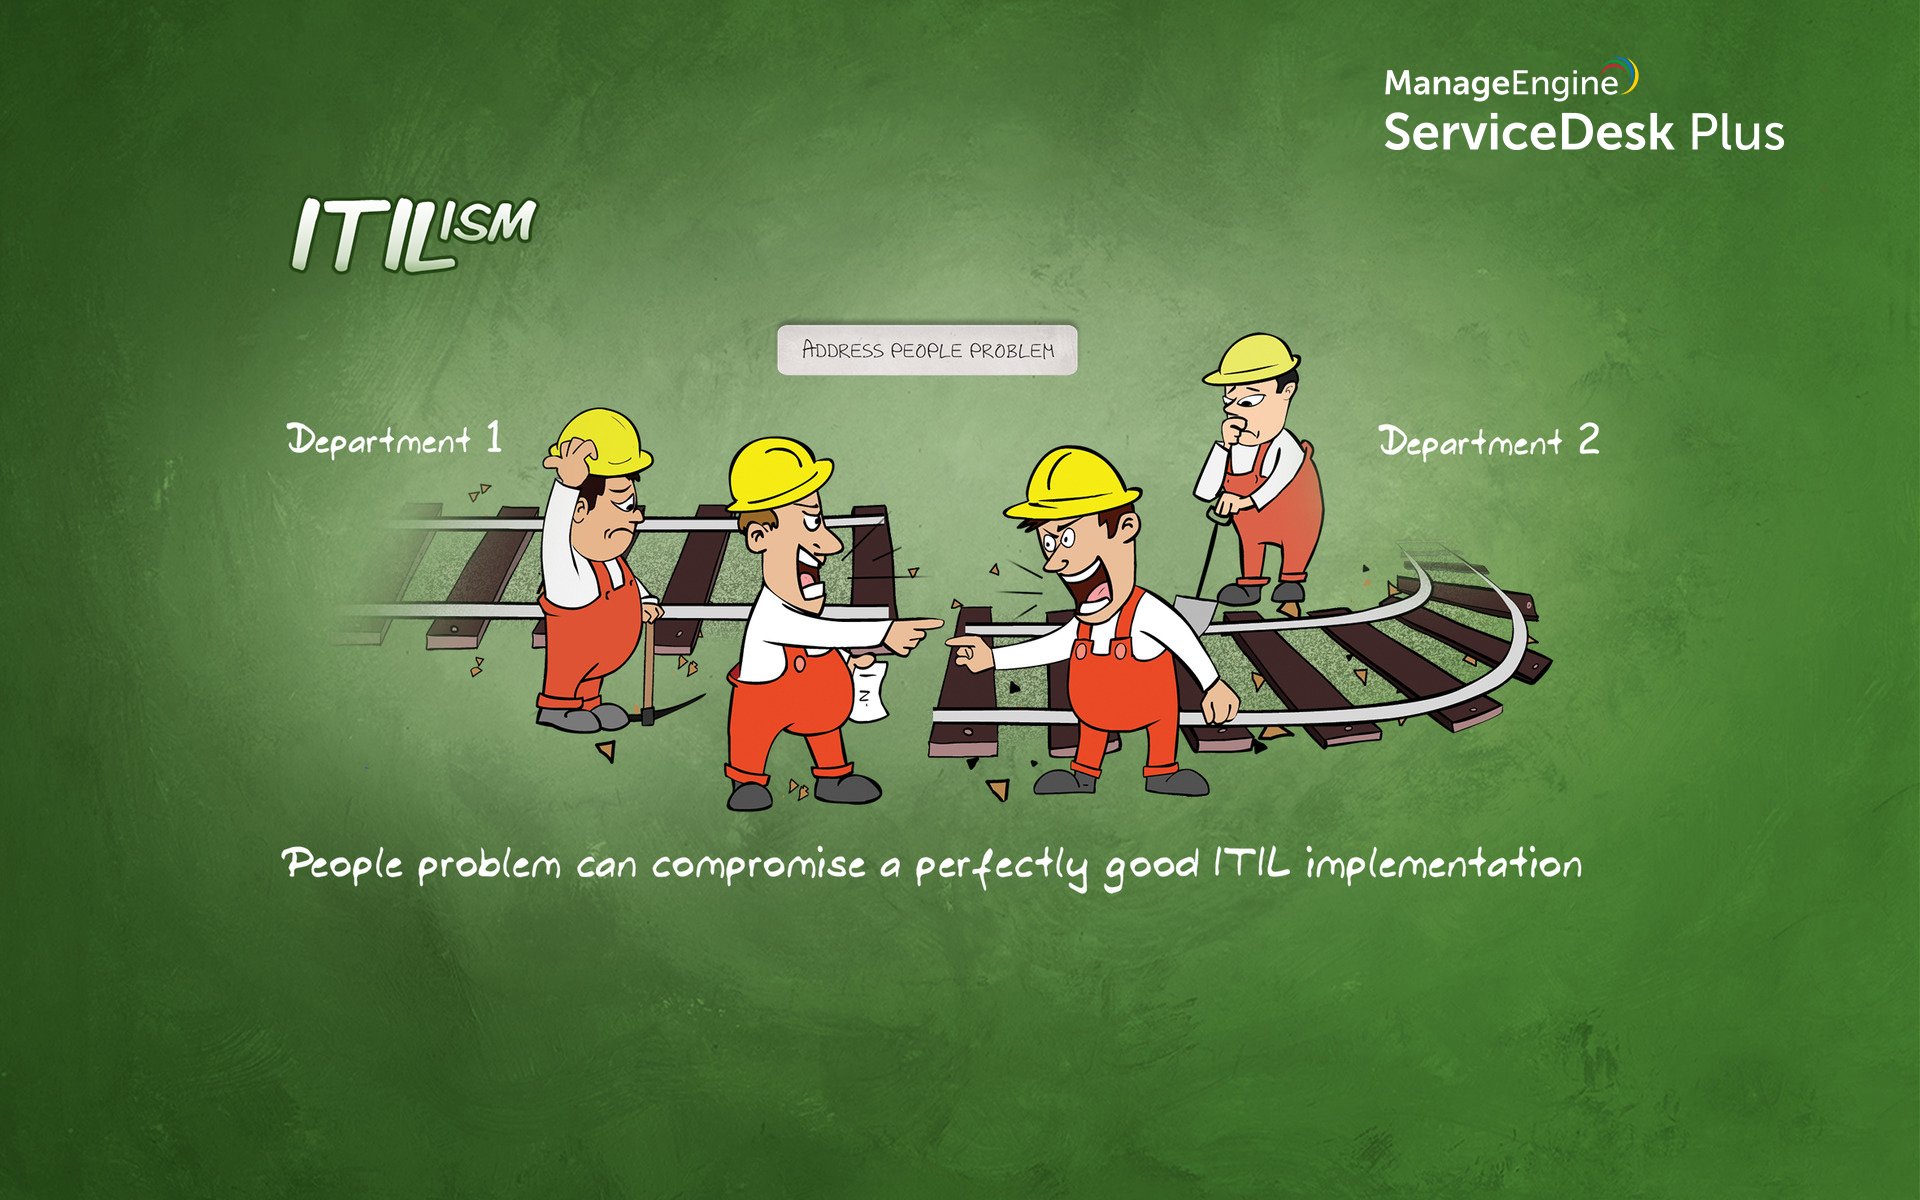 Itilism Download Free Itil Wallpaper Manageengine